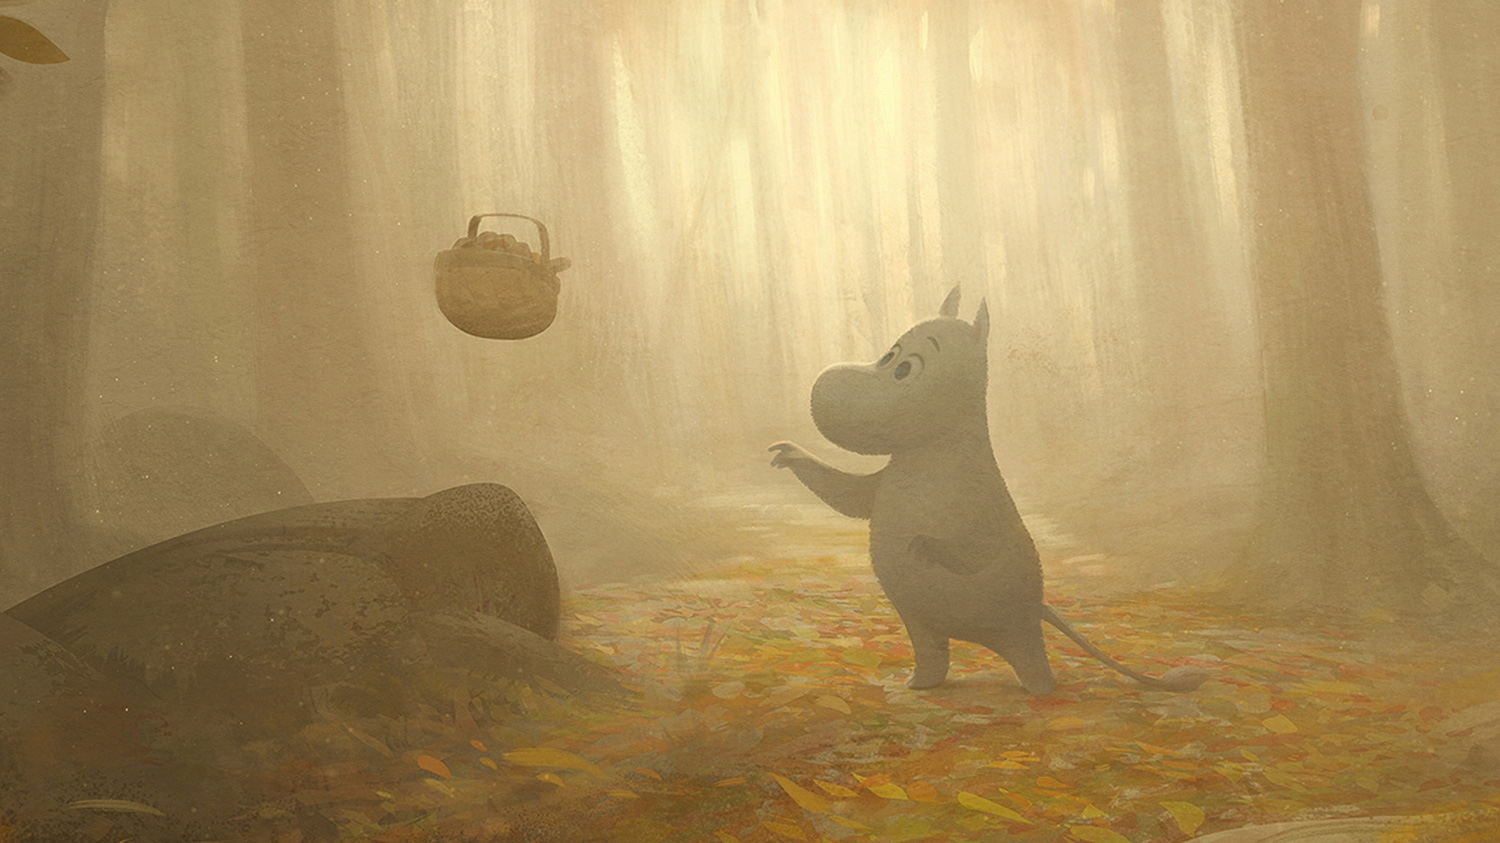 Advance still image of Moomin in the new series. Pretty, isn't it? Gave me hope.